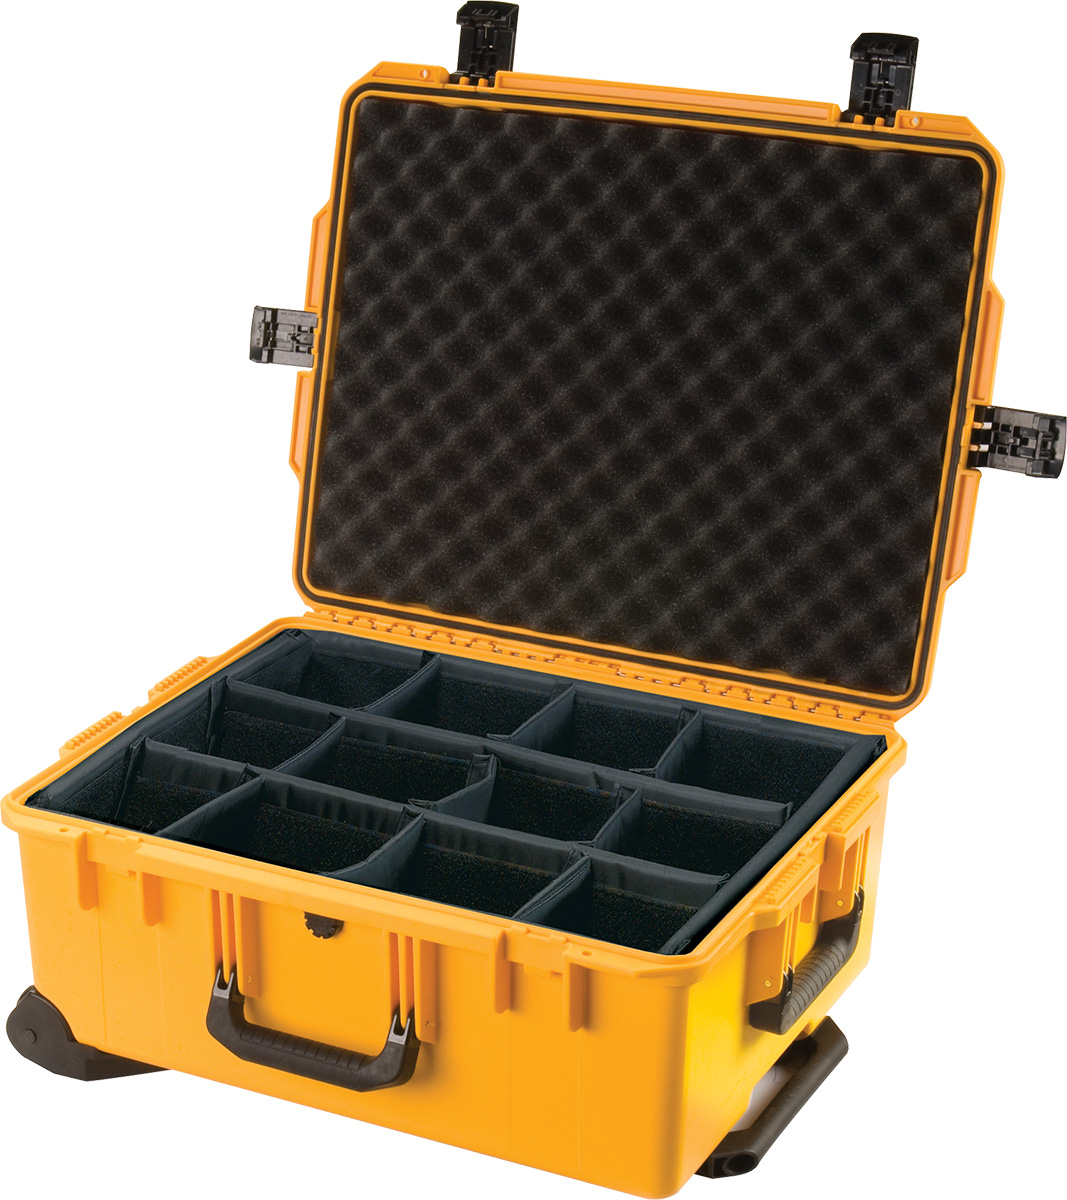 pelican im 2720 divider travel case